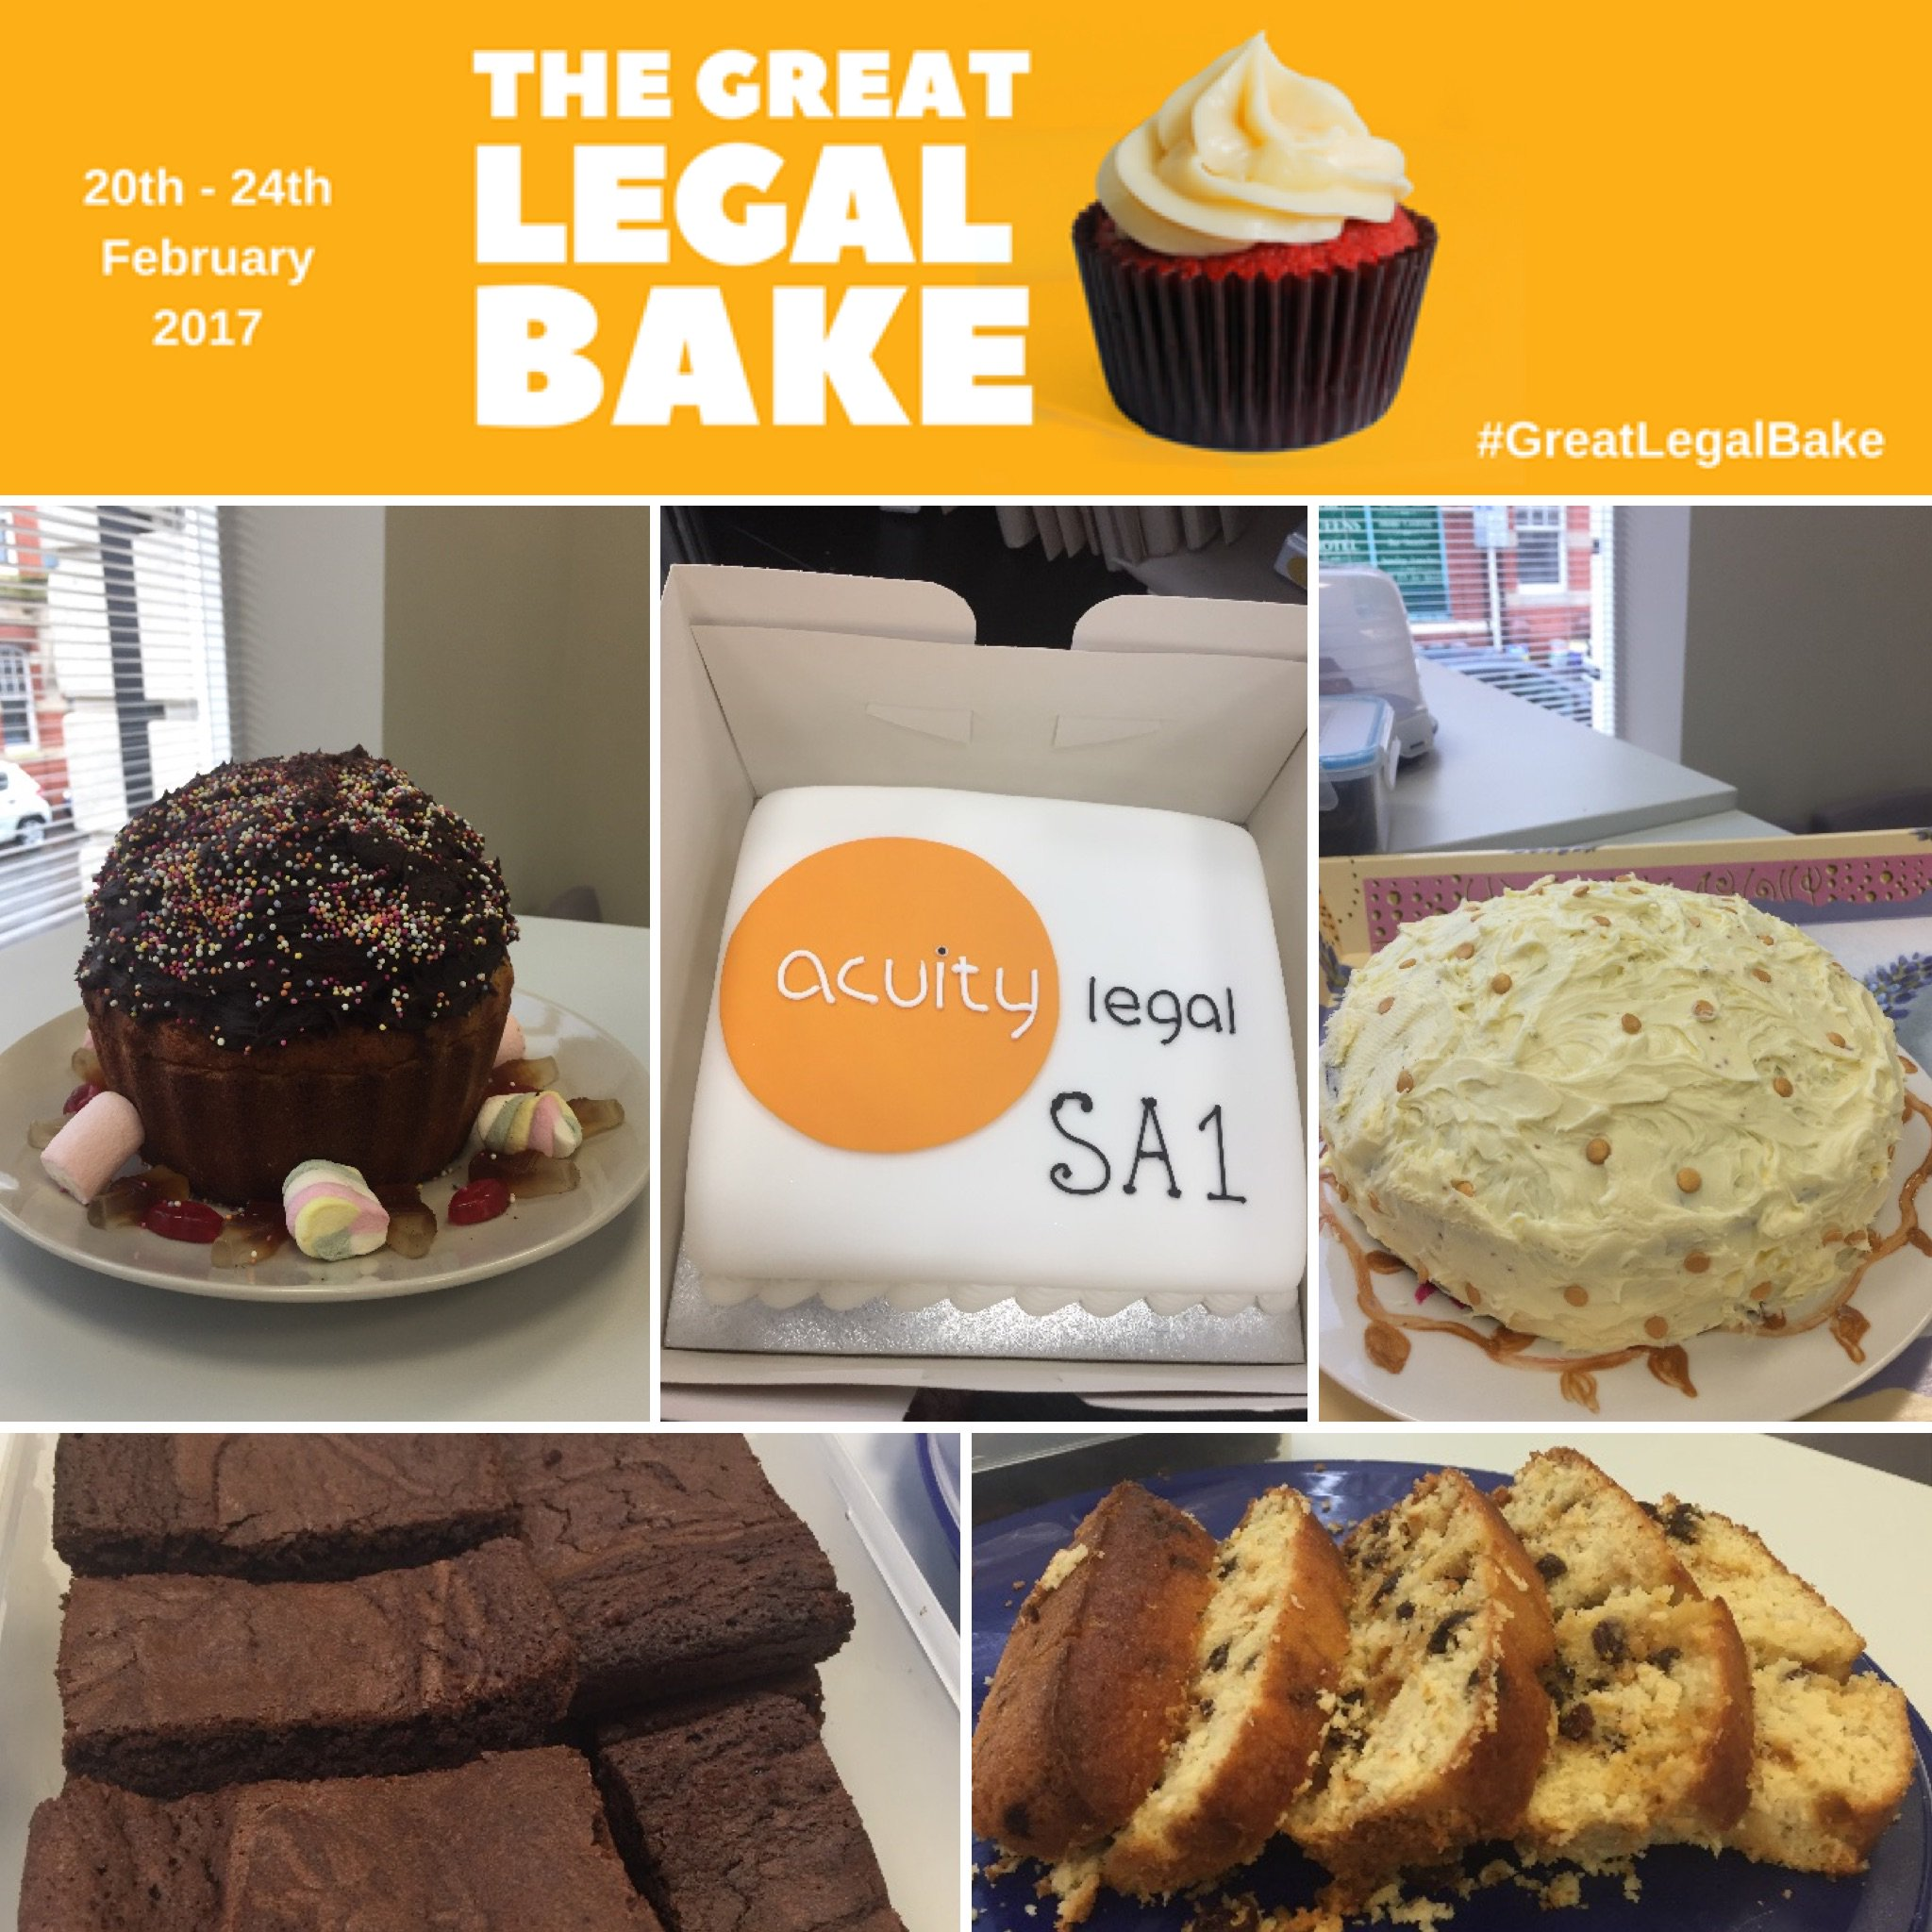 Some delicious #cakes from our #Swansea office! Still waiting for the results from judges. #Greatlegalbake is going well for Acuity Legal! https://t.co/YrE2DHoZAx